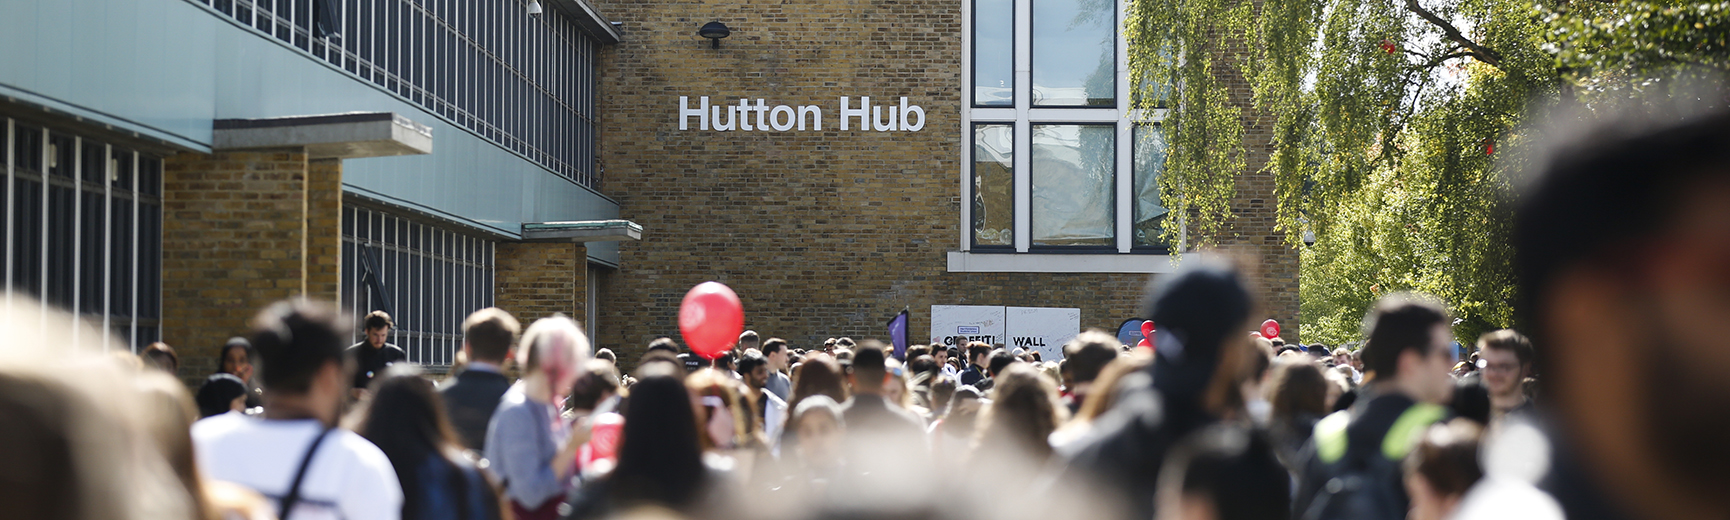 Group of people outside Hutton Hub